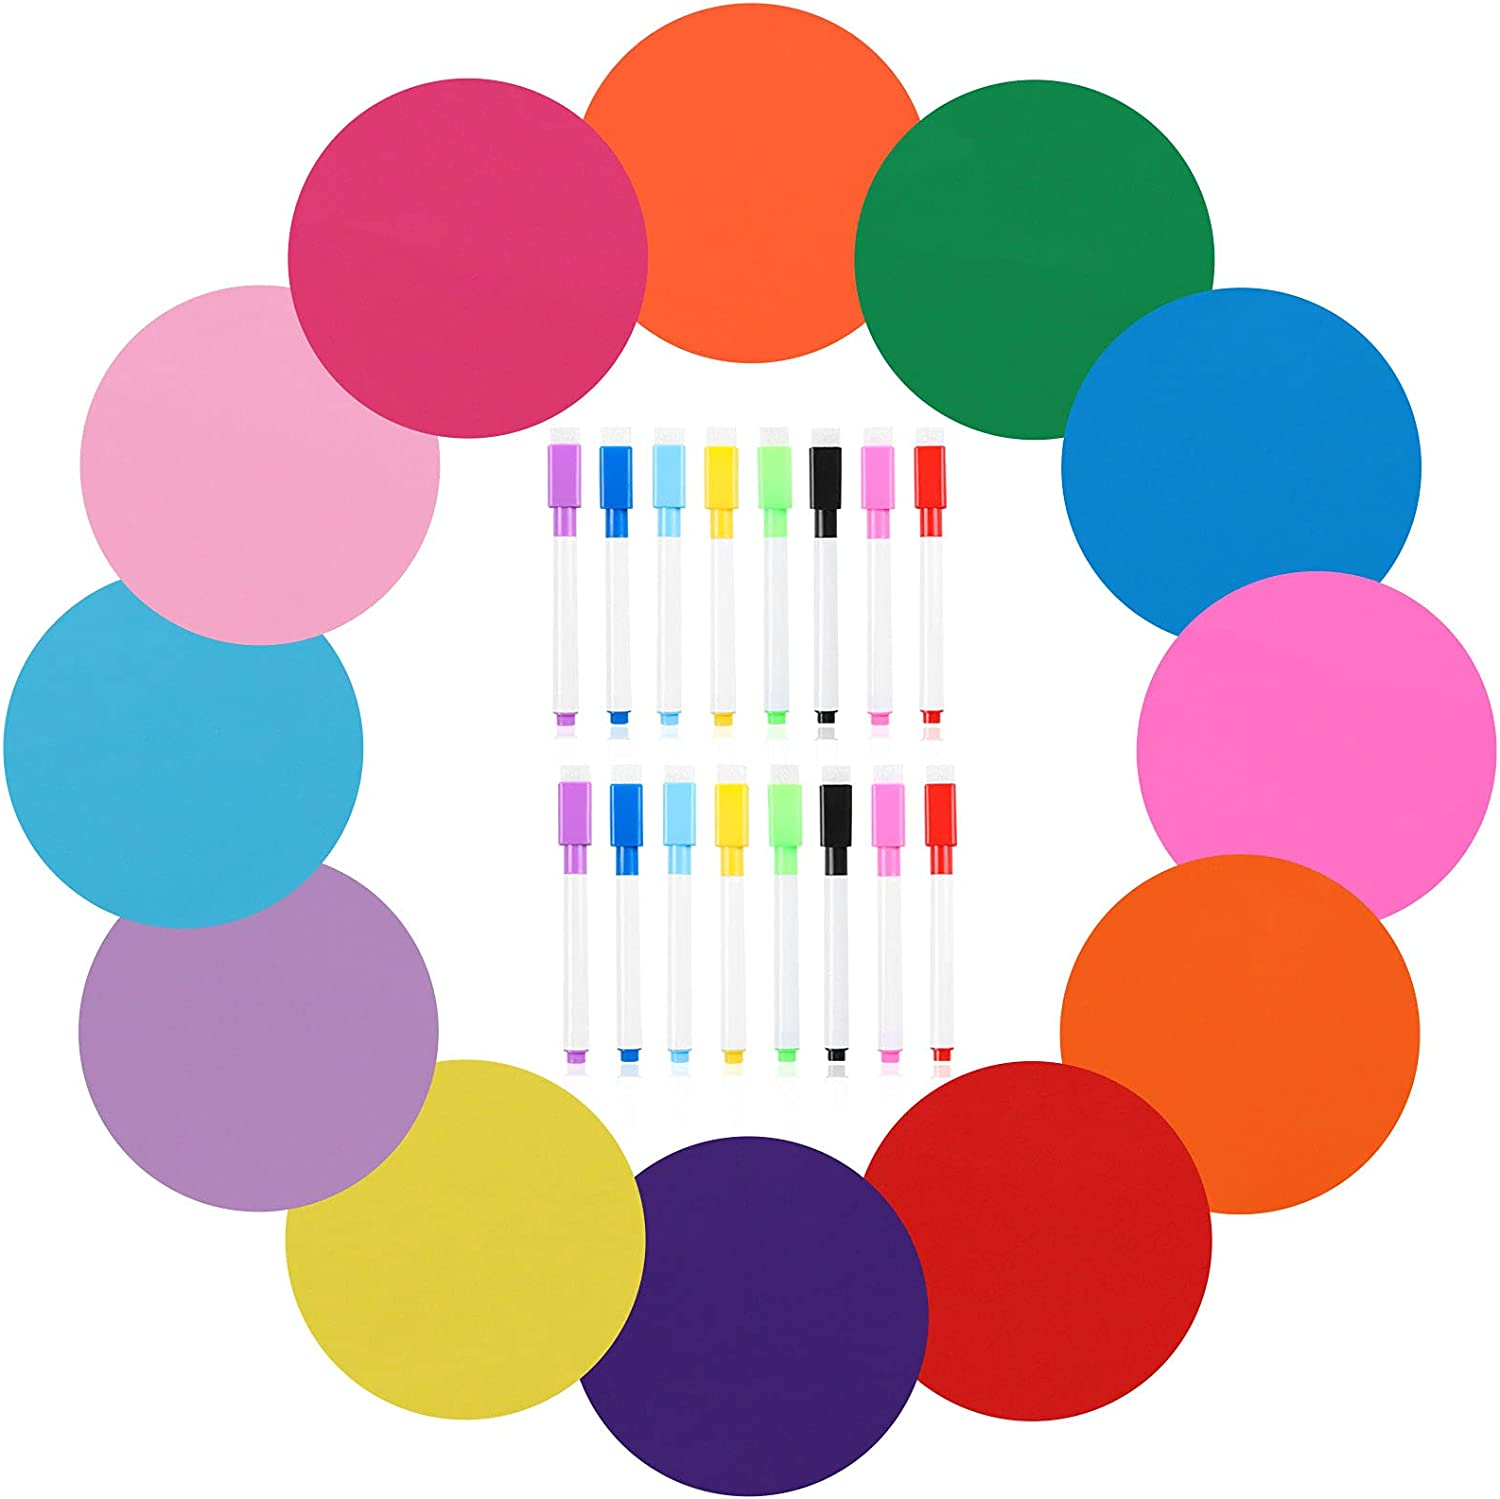 28 Pieces Dry Erase Board Marker Set 12 Colors Dry Erase Circles for Teachers Removable Vinyl Circles 11'' Wall Stickers Multicolor Decals Table Spots for Home Office School Classroom Decorations